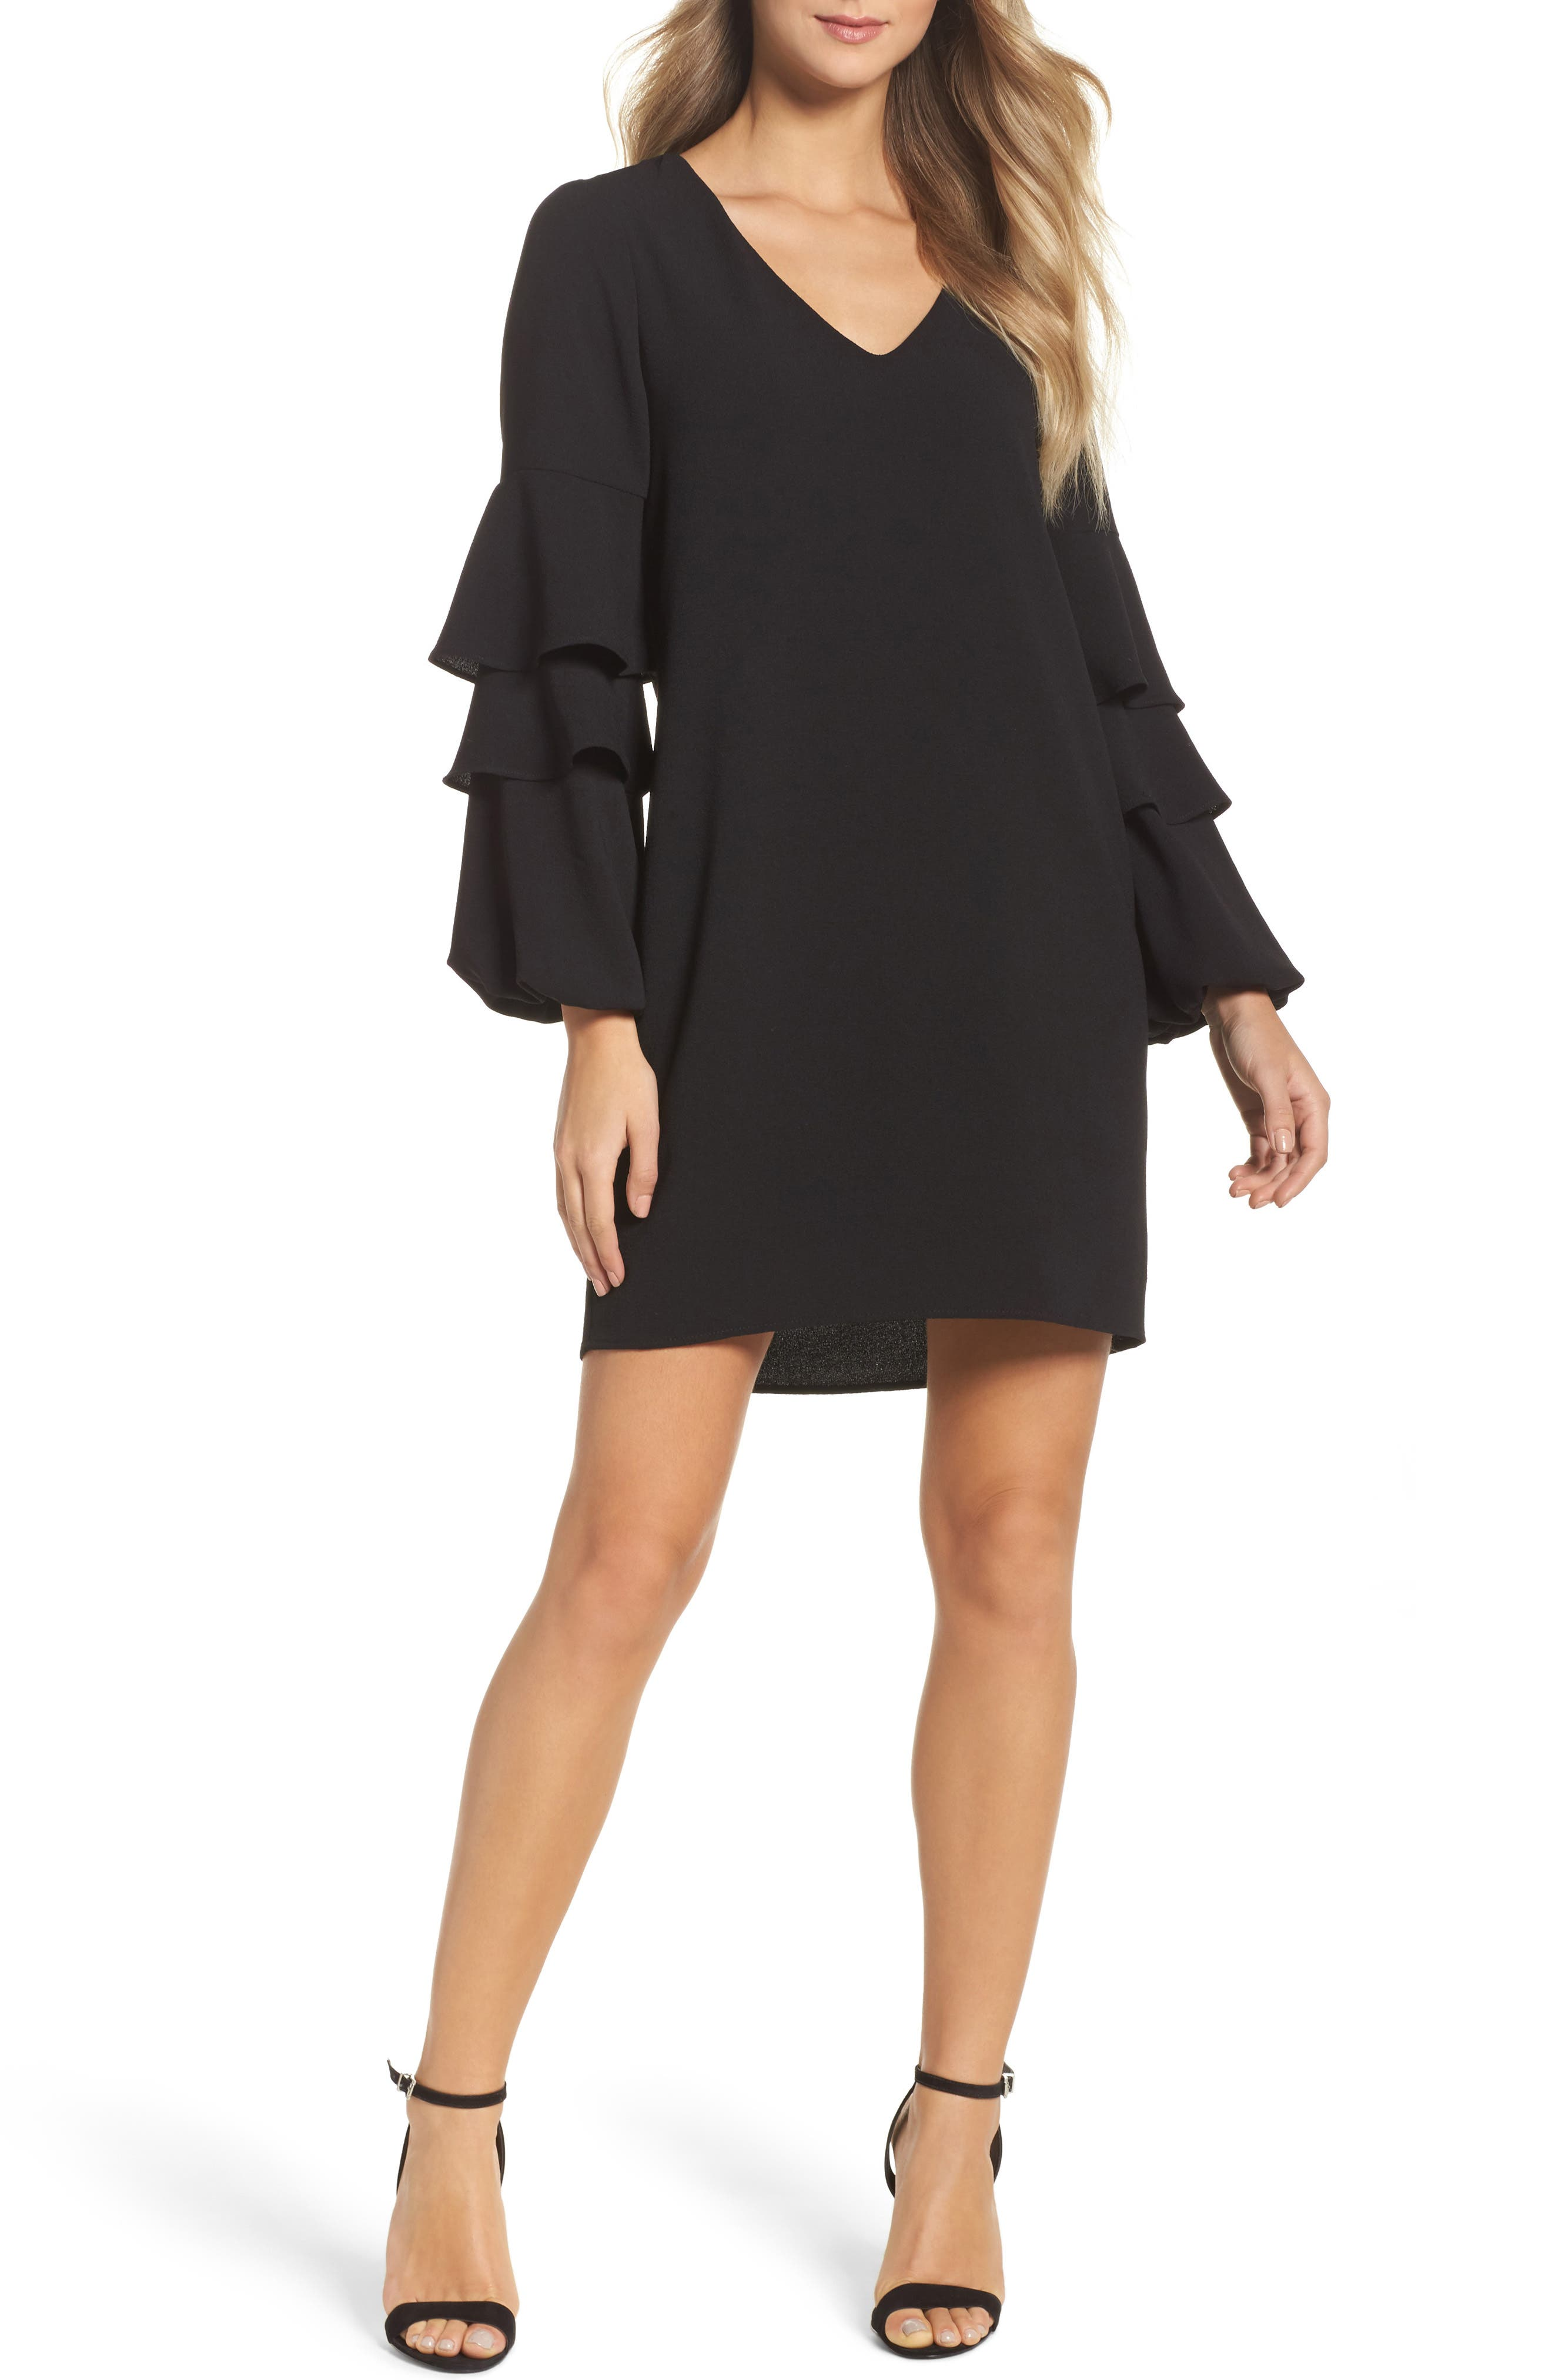 Long Sleeve Cocktail & Party Dresses